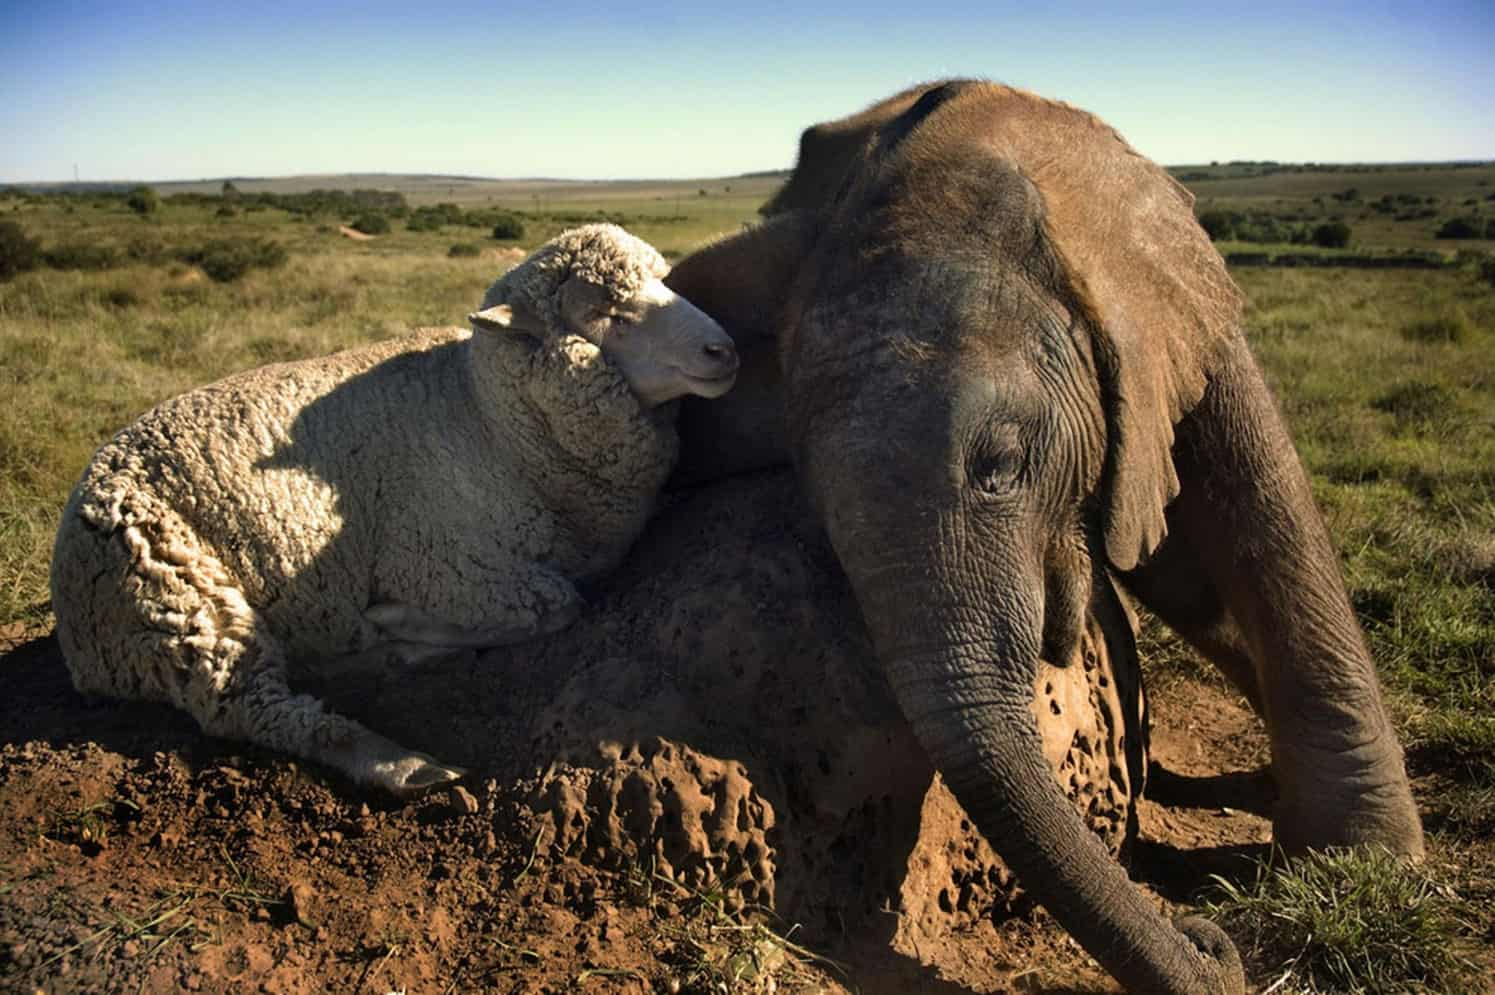 Elephant-and-Sheep2.jpg